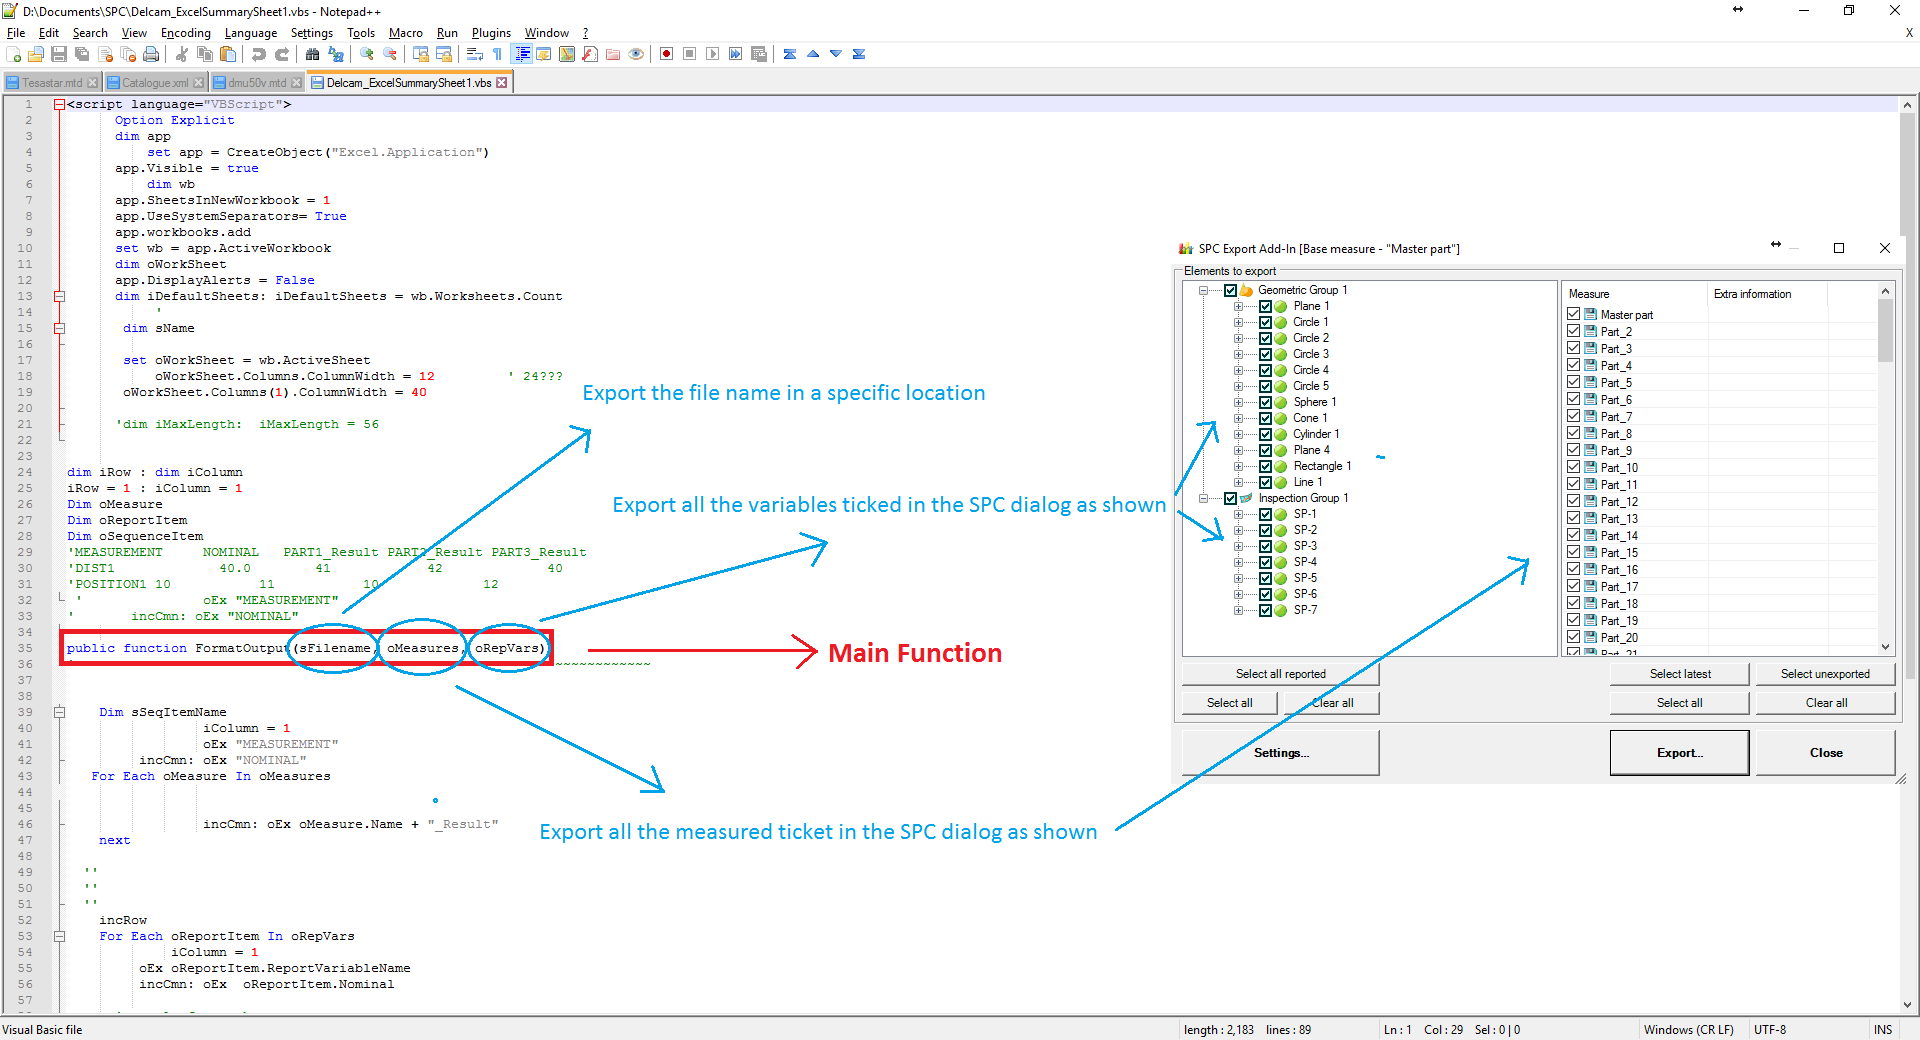 Solved: How to include part name in csv export for SPC add